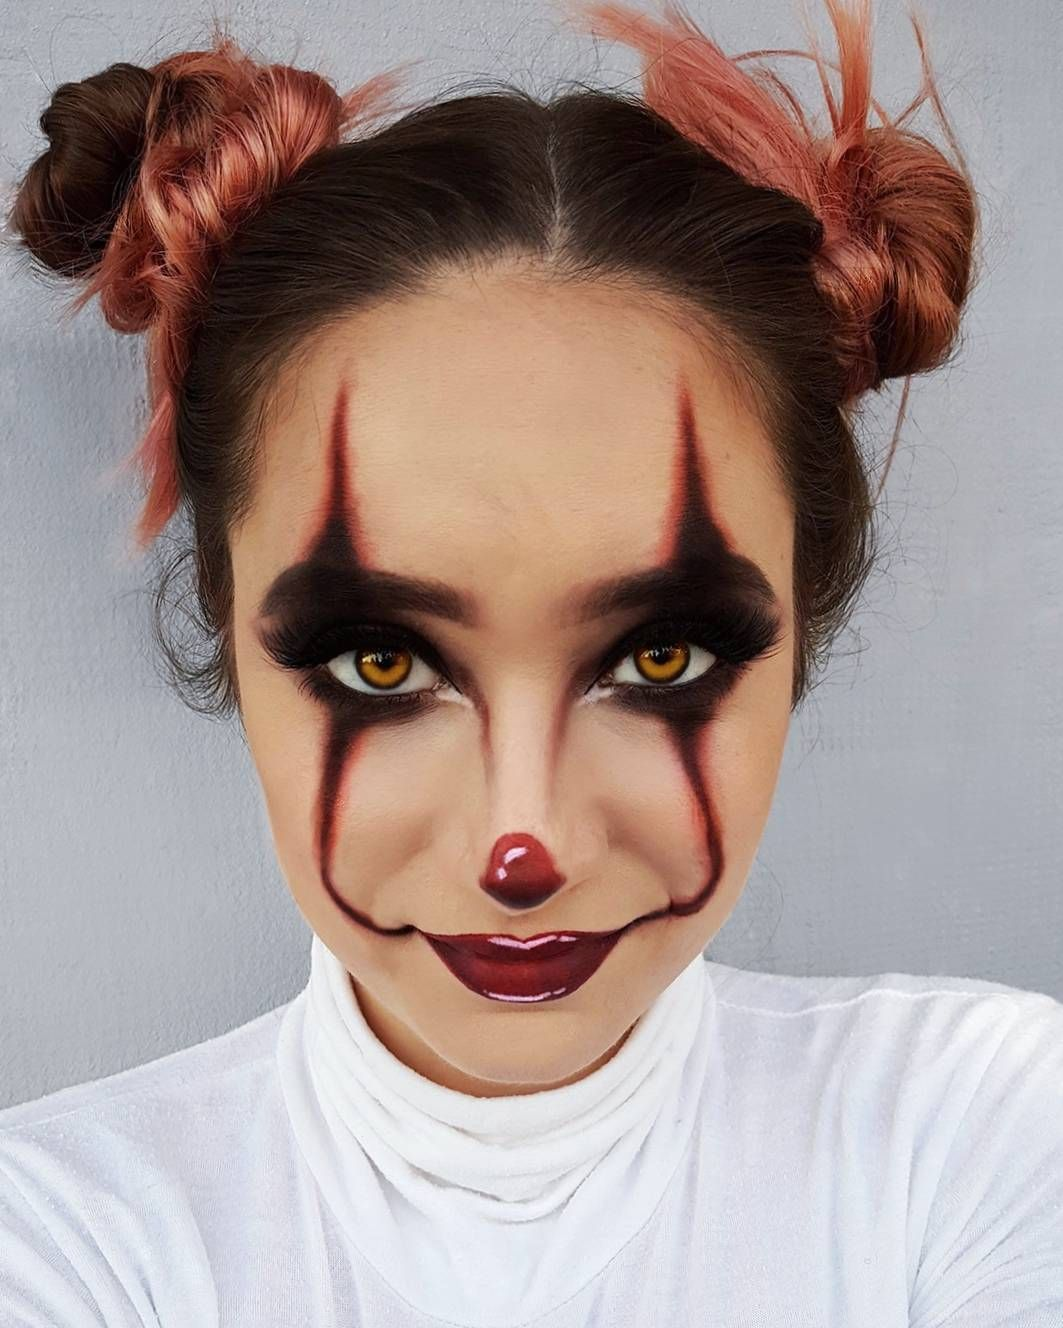 Are you looking for the best Halloween makeup ideas? Check